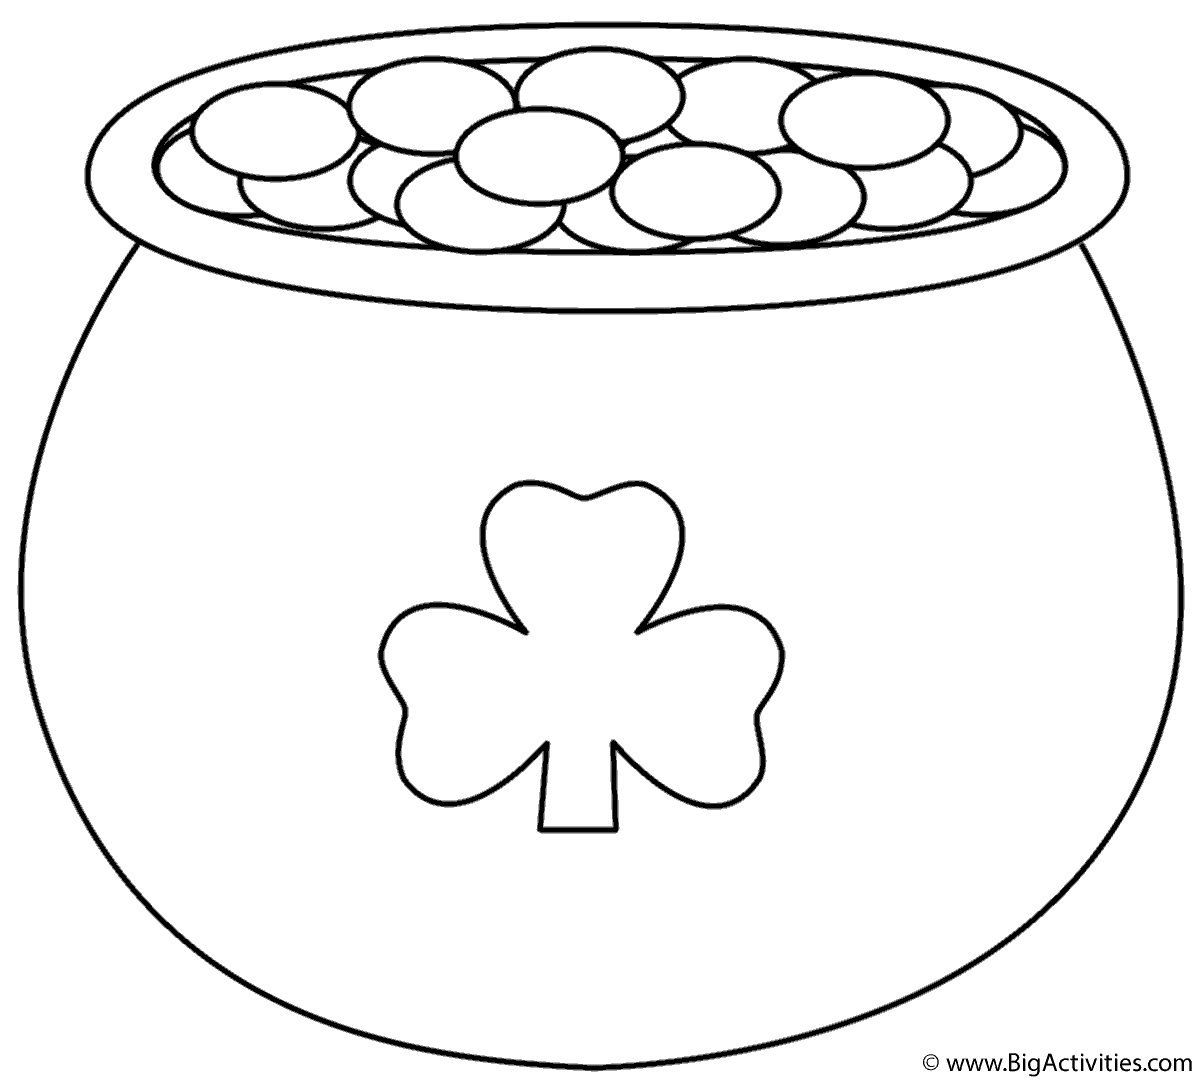 pot of gold with shamrock coloring page st patricks day - Shamrock Coloring Page